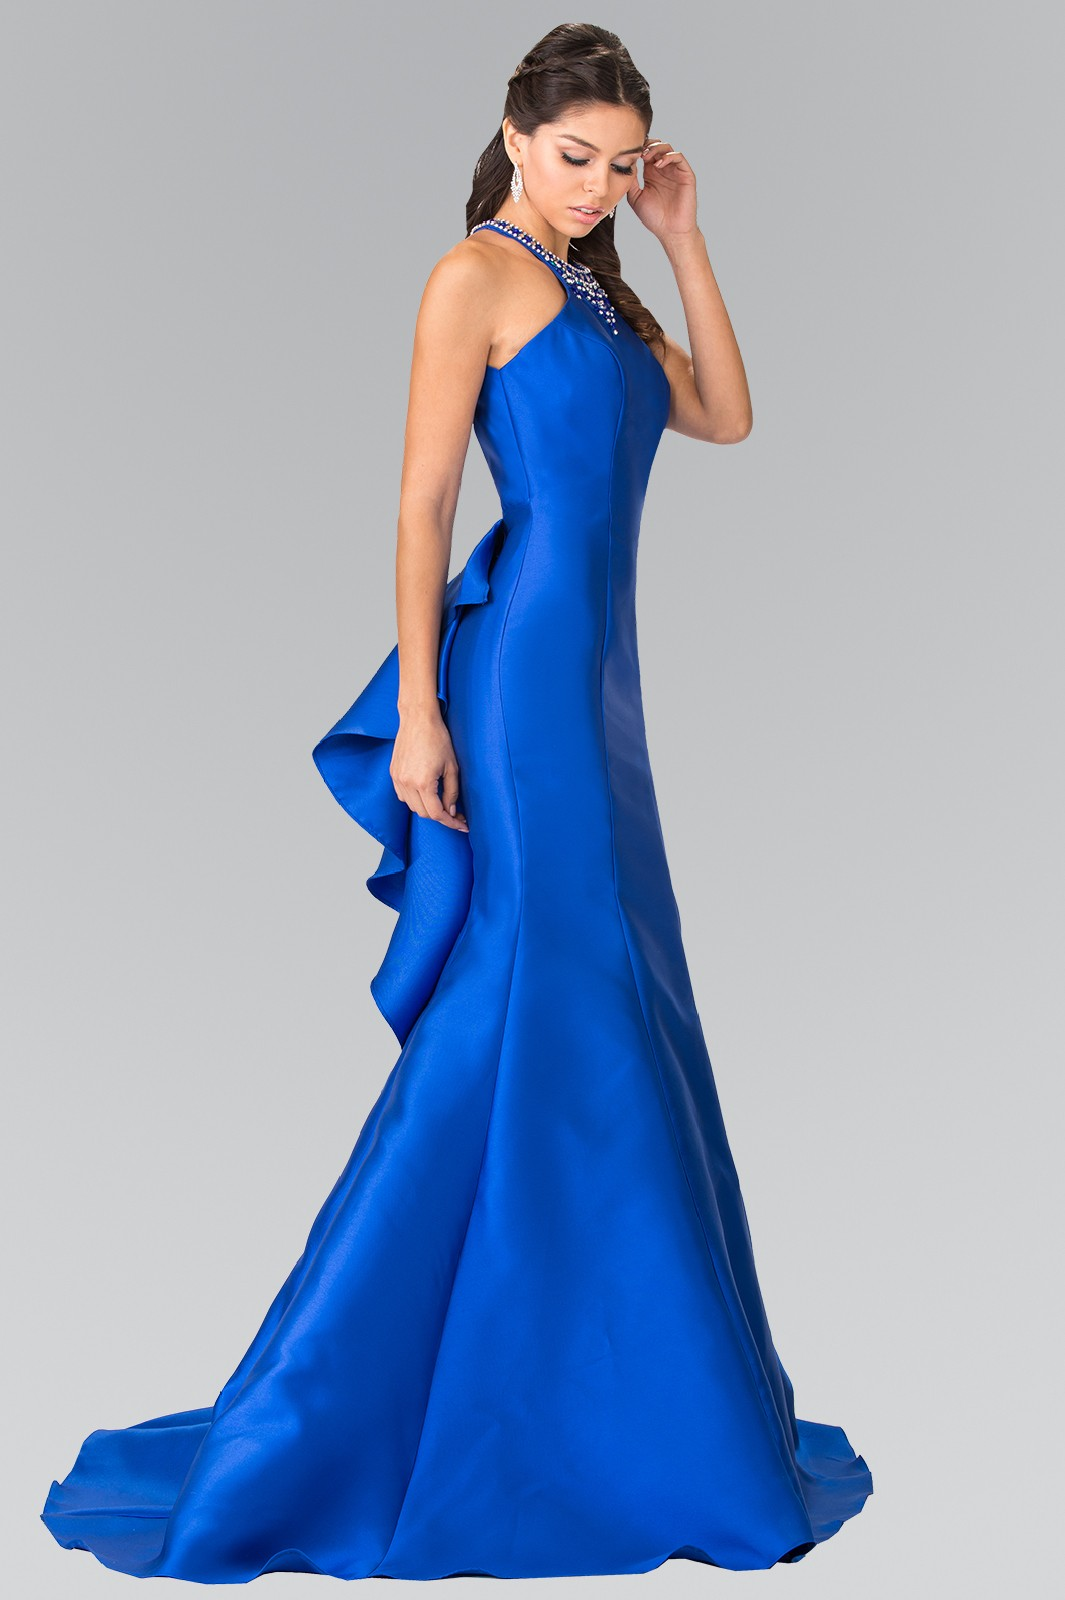 High Neck Jeweled Collar Mermaid Dress with Open Back and Ruffles in Royal Blue